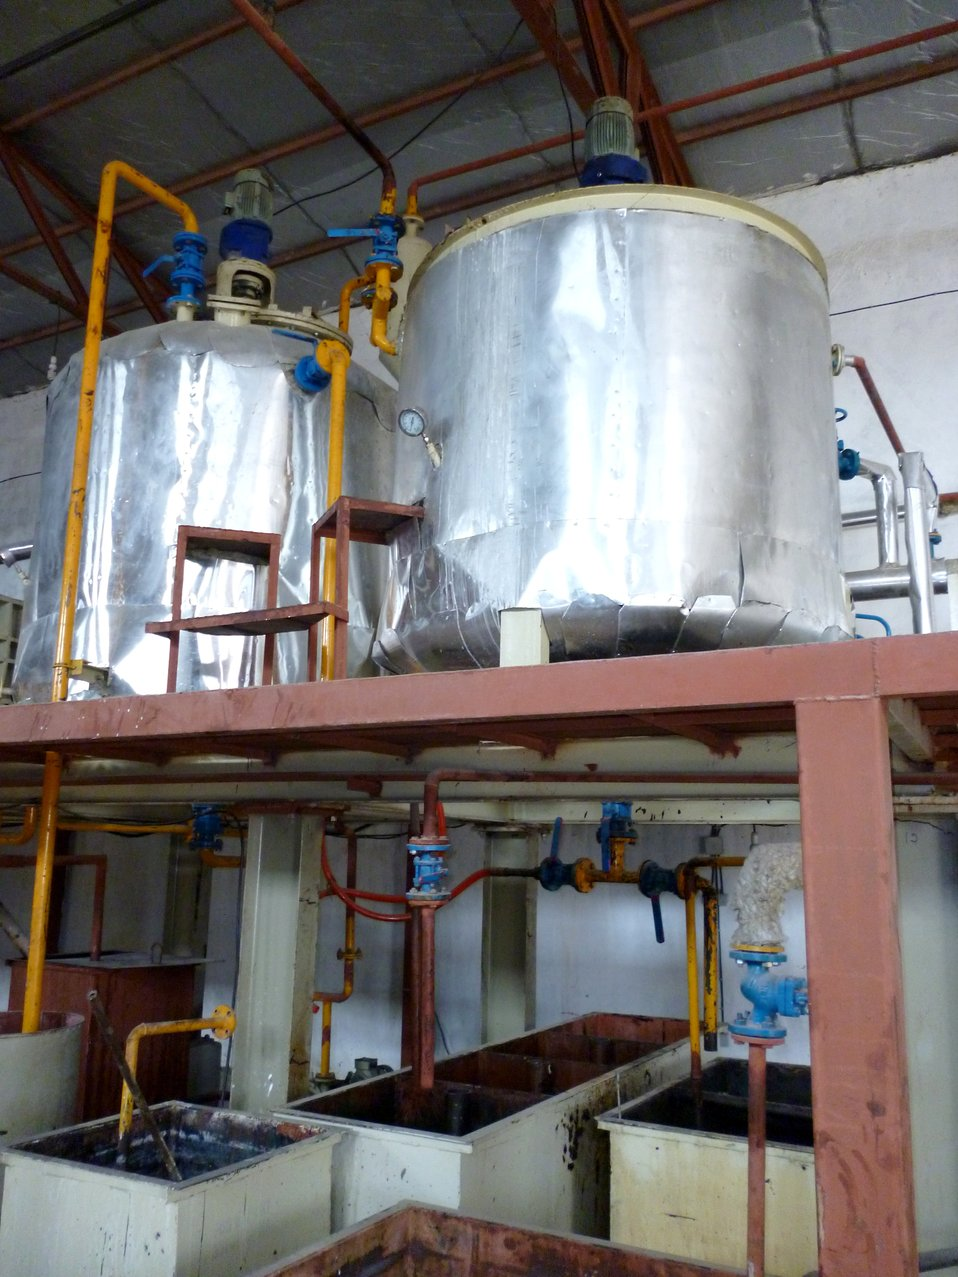 Valuable cottonseed oil is run through a series of vats and filters during the refining process.